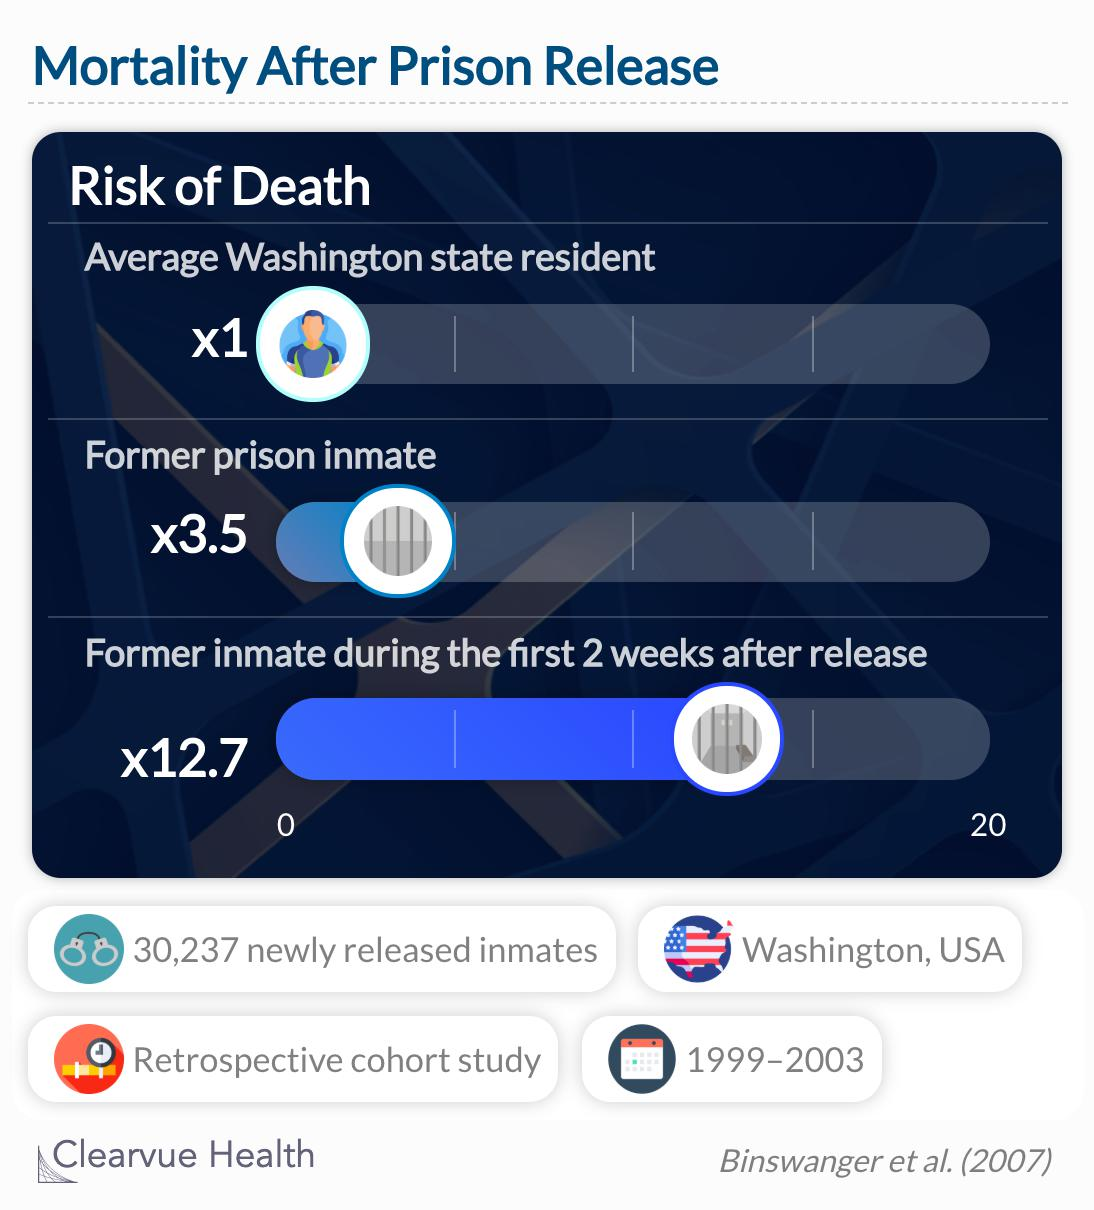 Former inmates had a 3.5 times higher risk of death compared to other state residents.